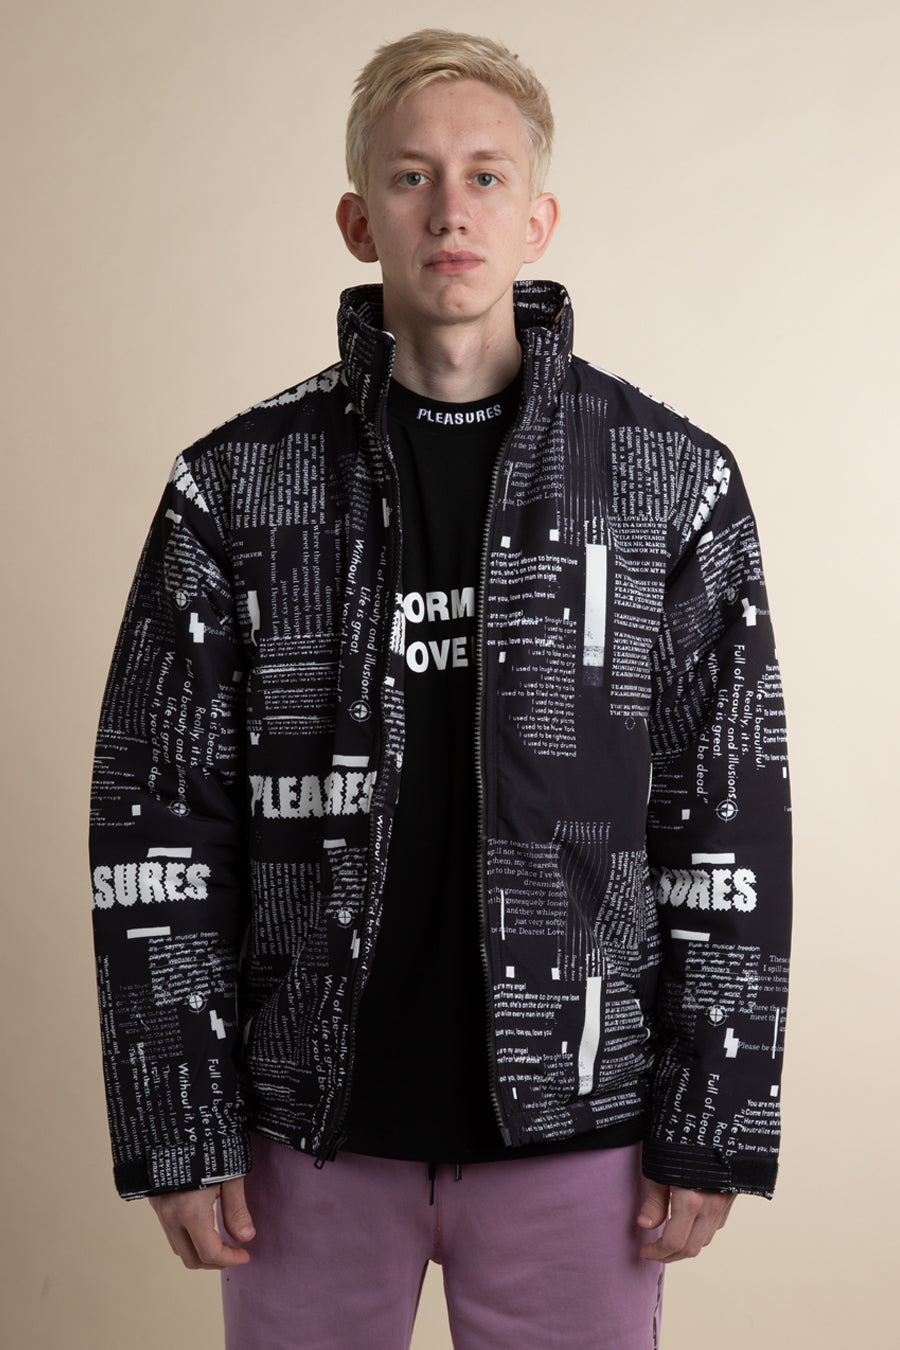 Pleasures - Poems Puffer Coat